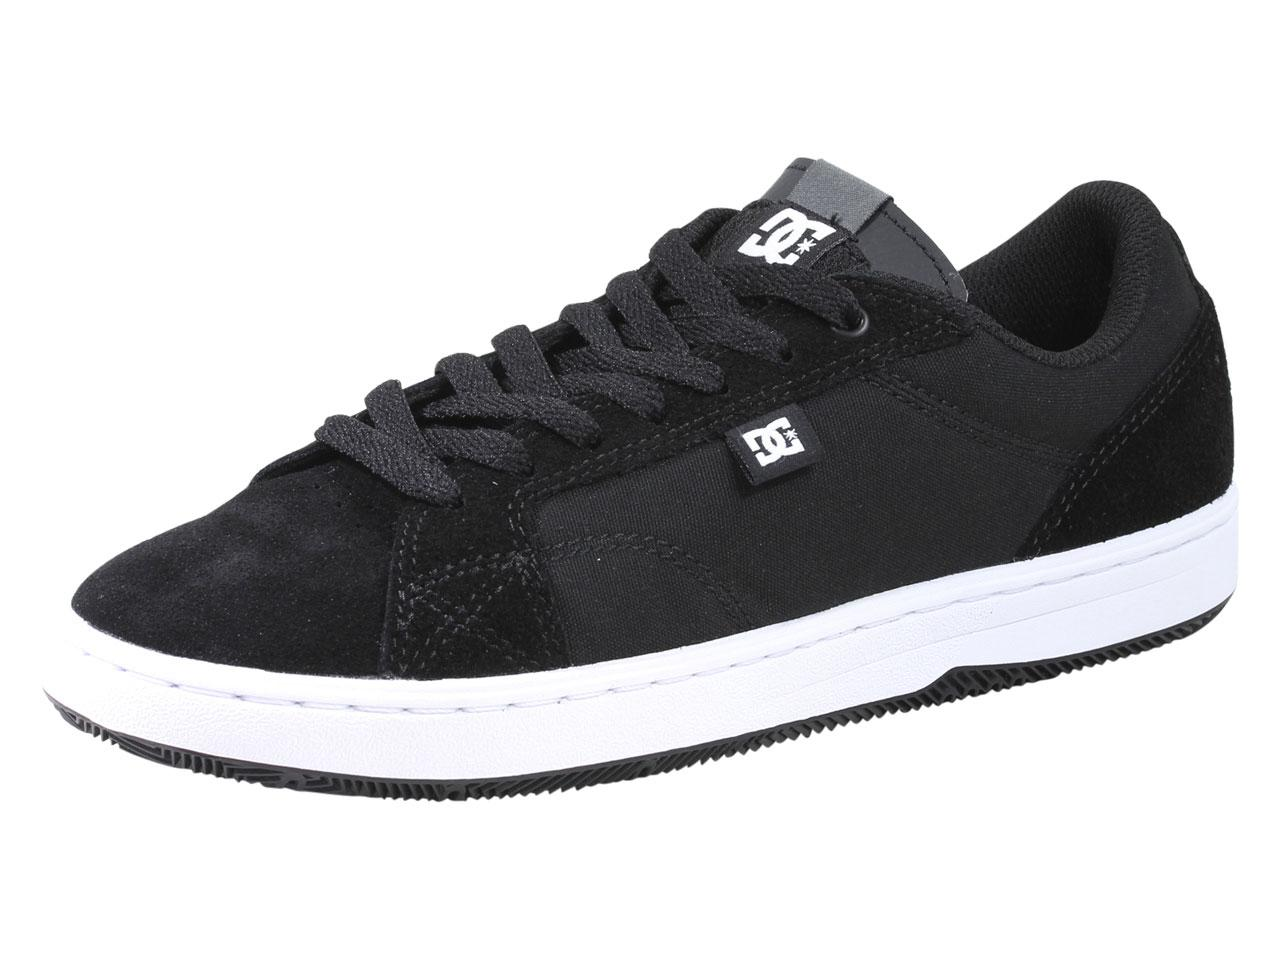 Image of DC Men's Astor Skateboarding Sneakers Shoes - Black - 11 D(M) US